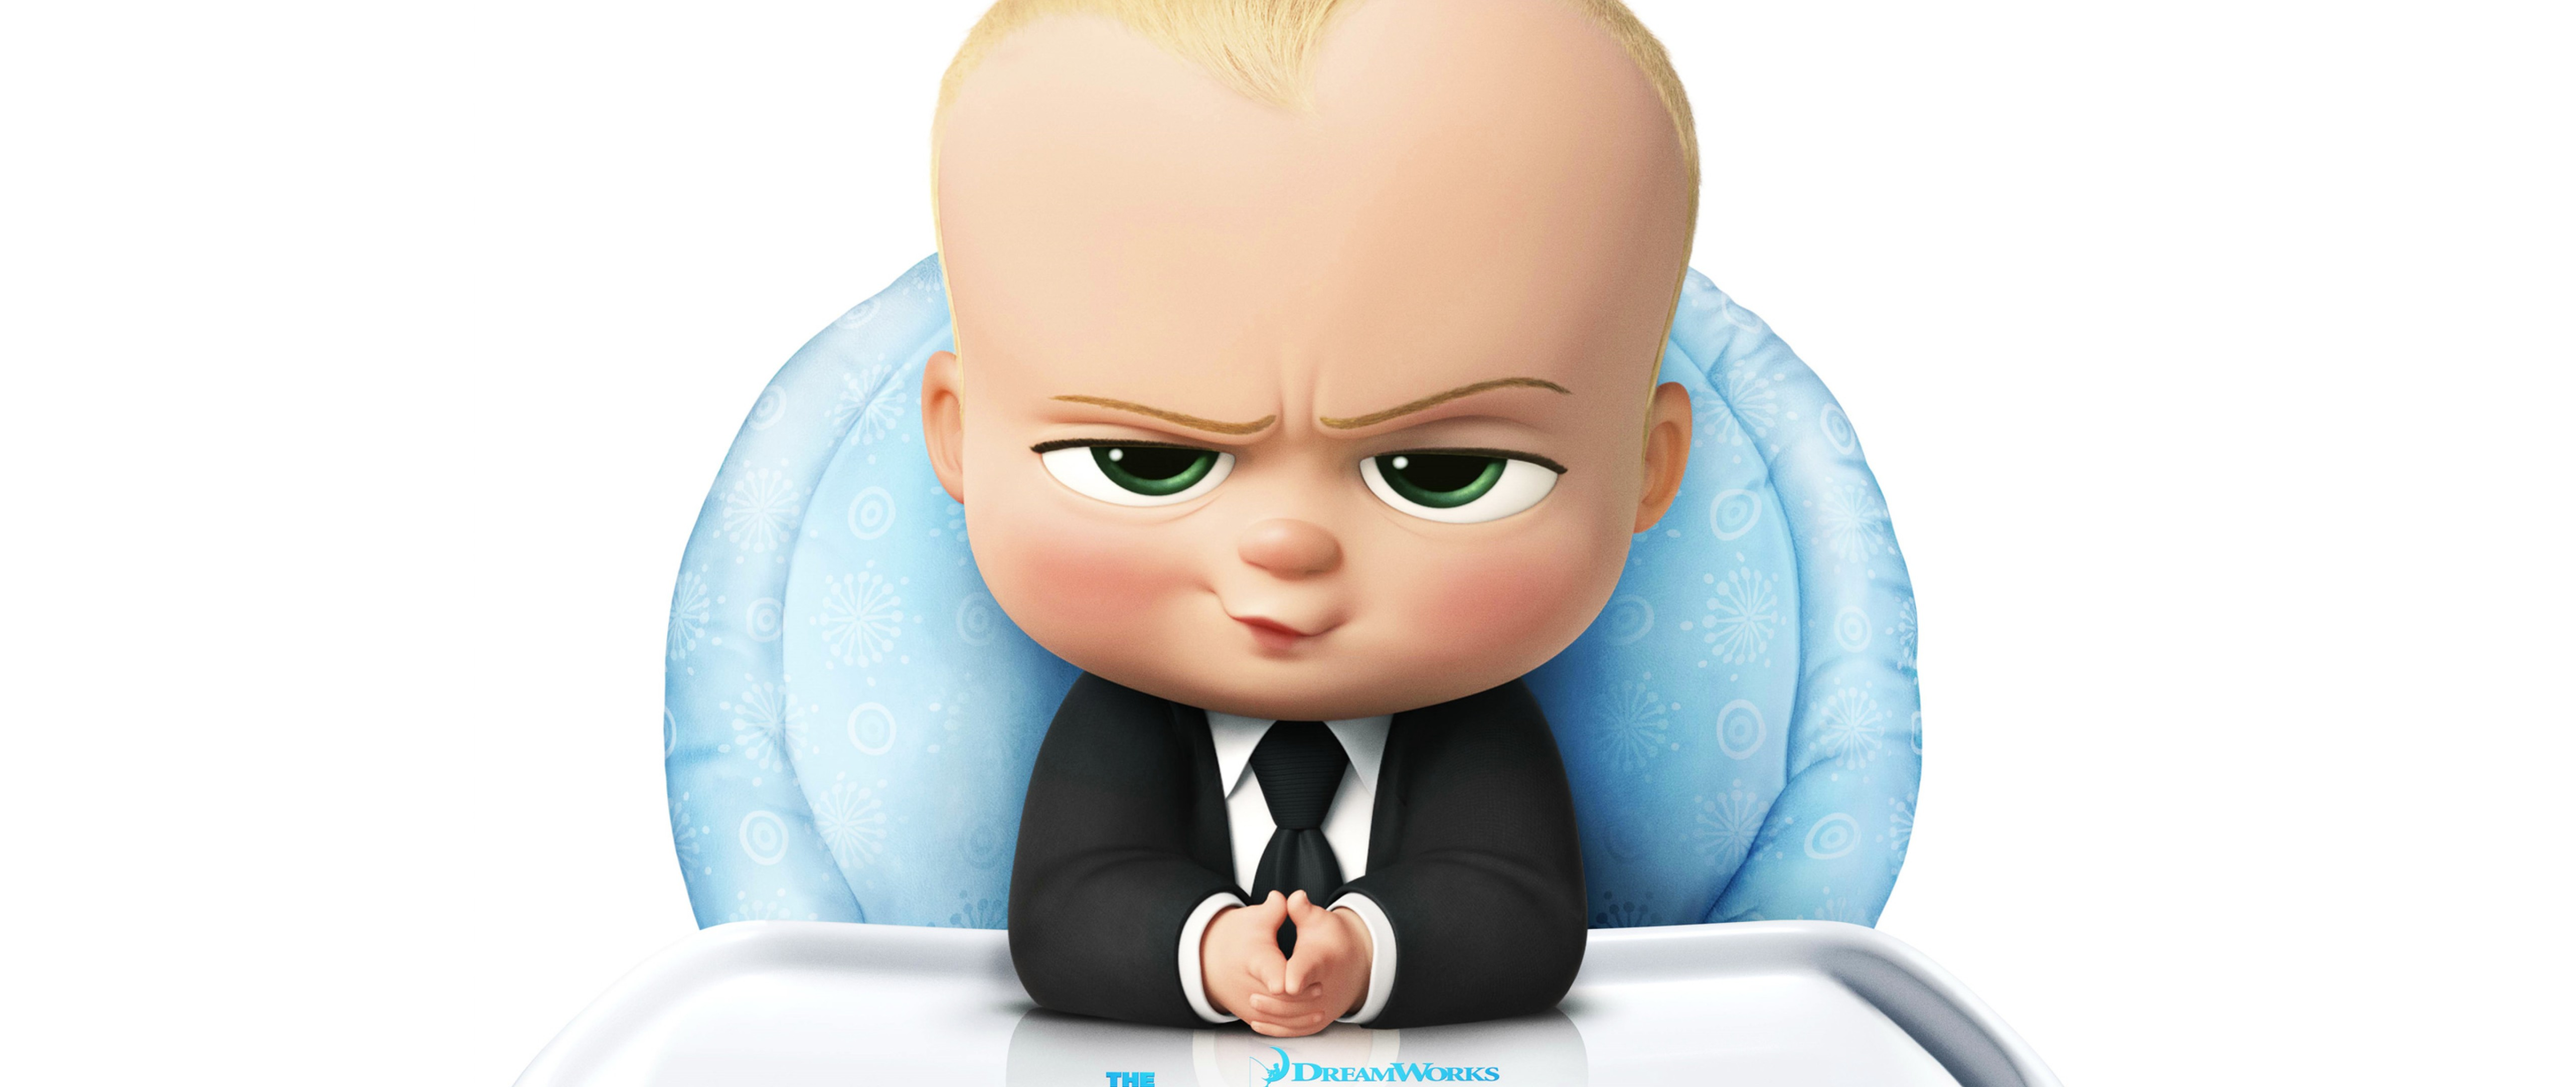 Free Download The Boss Baby Movie Hd Wallpaper for Desktop